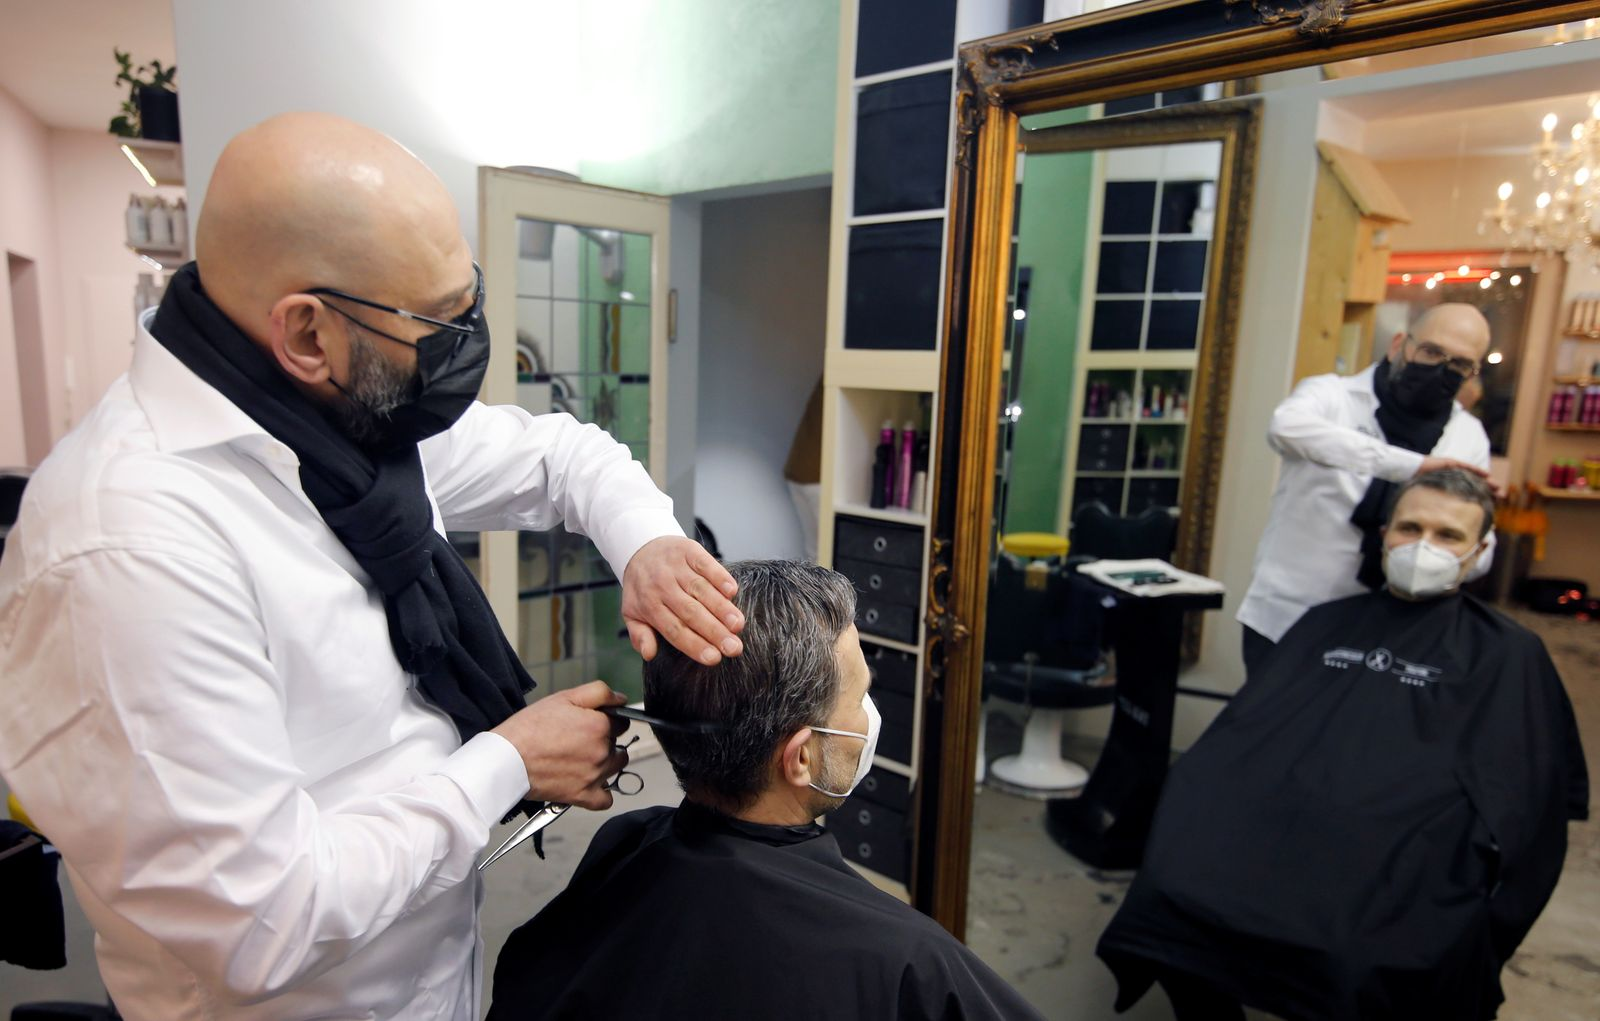 Hair dressers are allowed to re-open in Germany